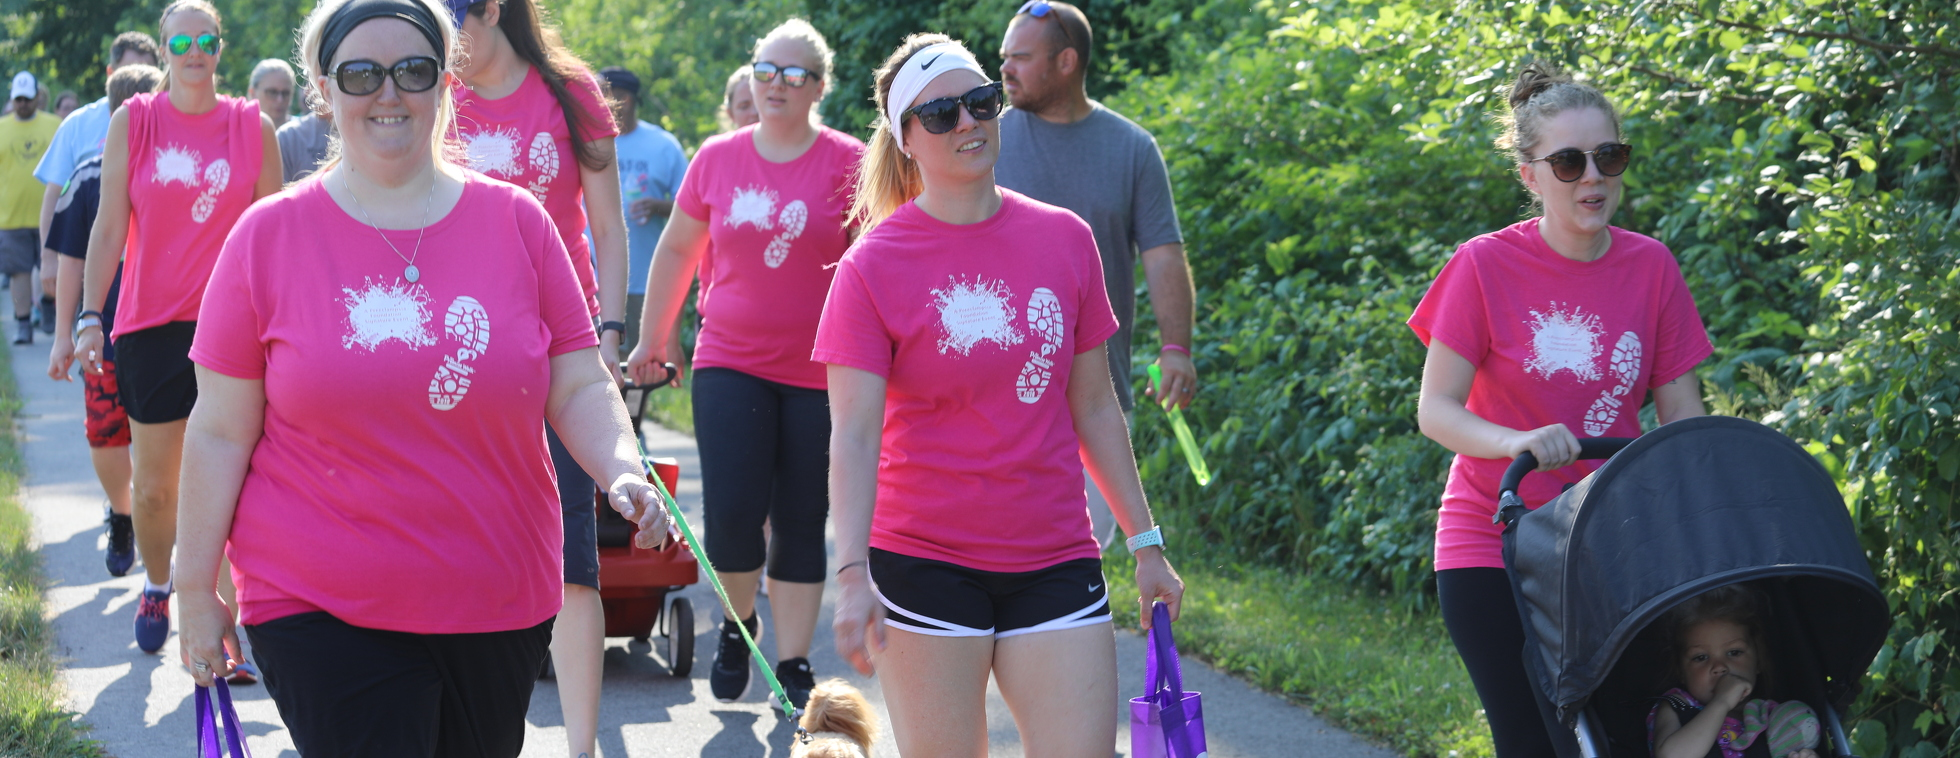 Indianapolis Promise Walk for Preeclampsia